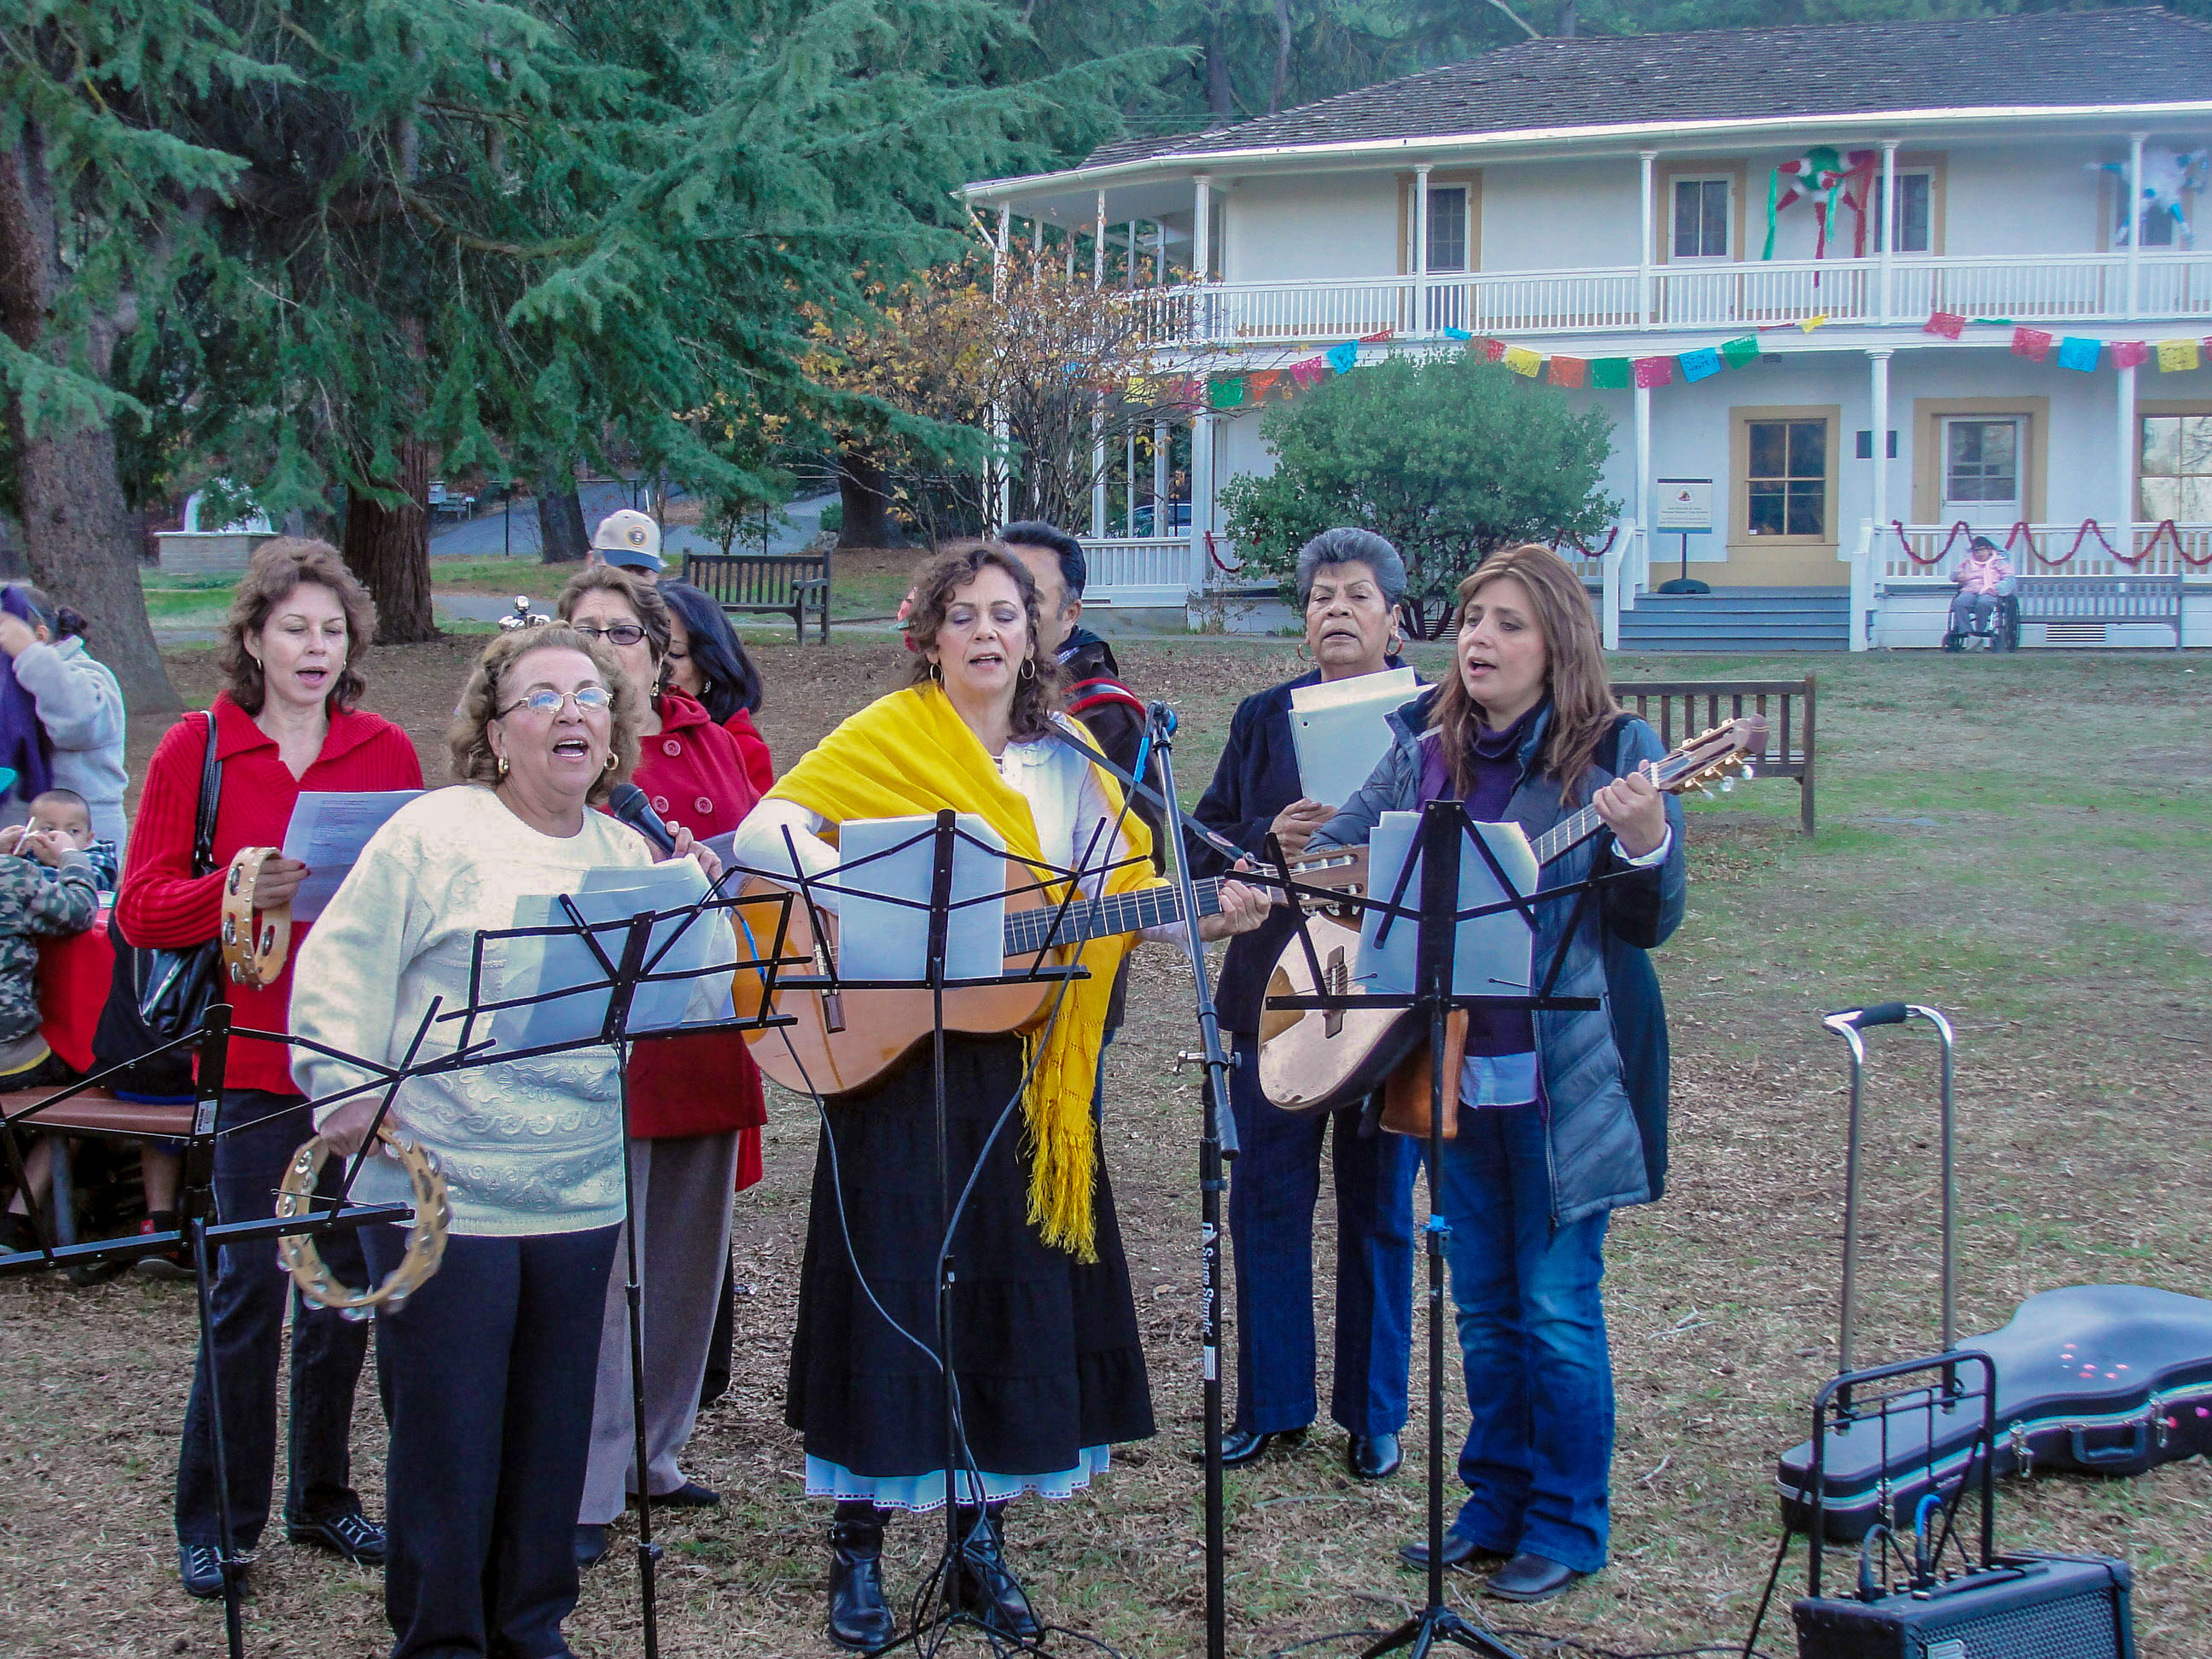 A festive choir sings and plays music outside a whitewashed decorated adobe.